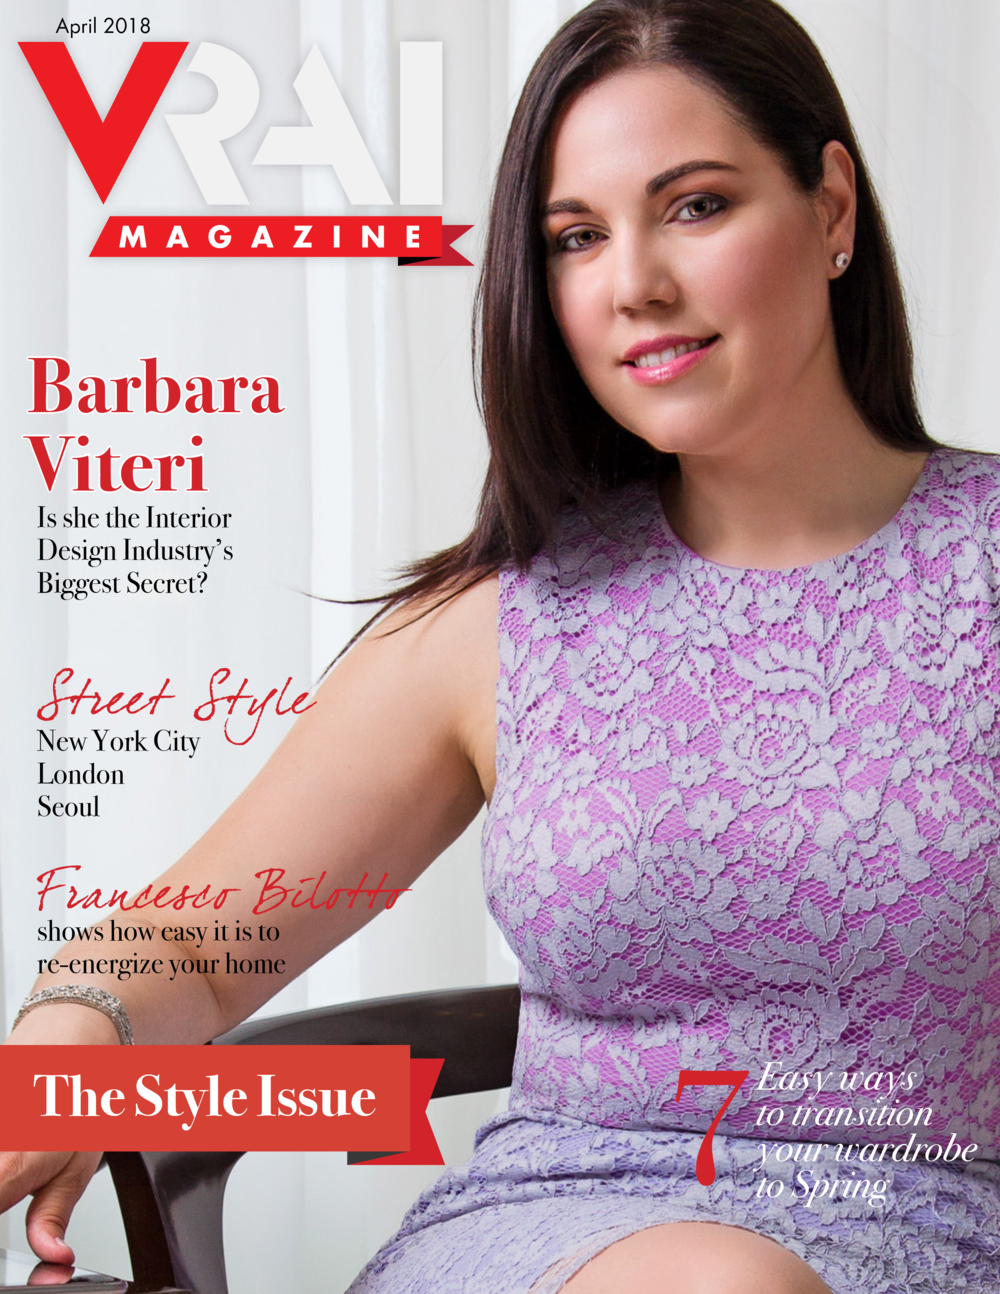 VRAI Magazine Spring Style Issue April 2018 - Barbara Viteri-1.png